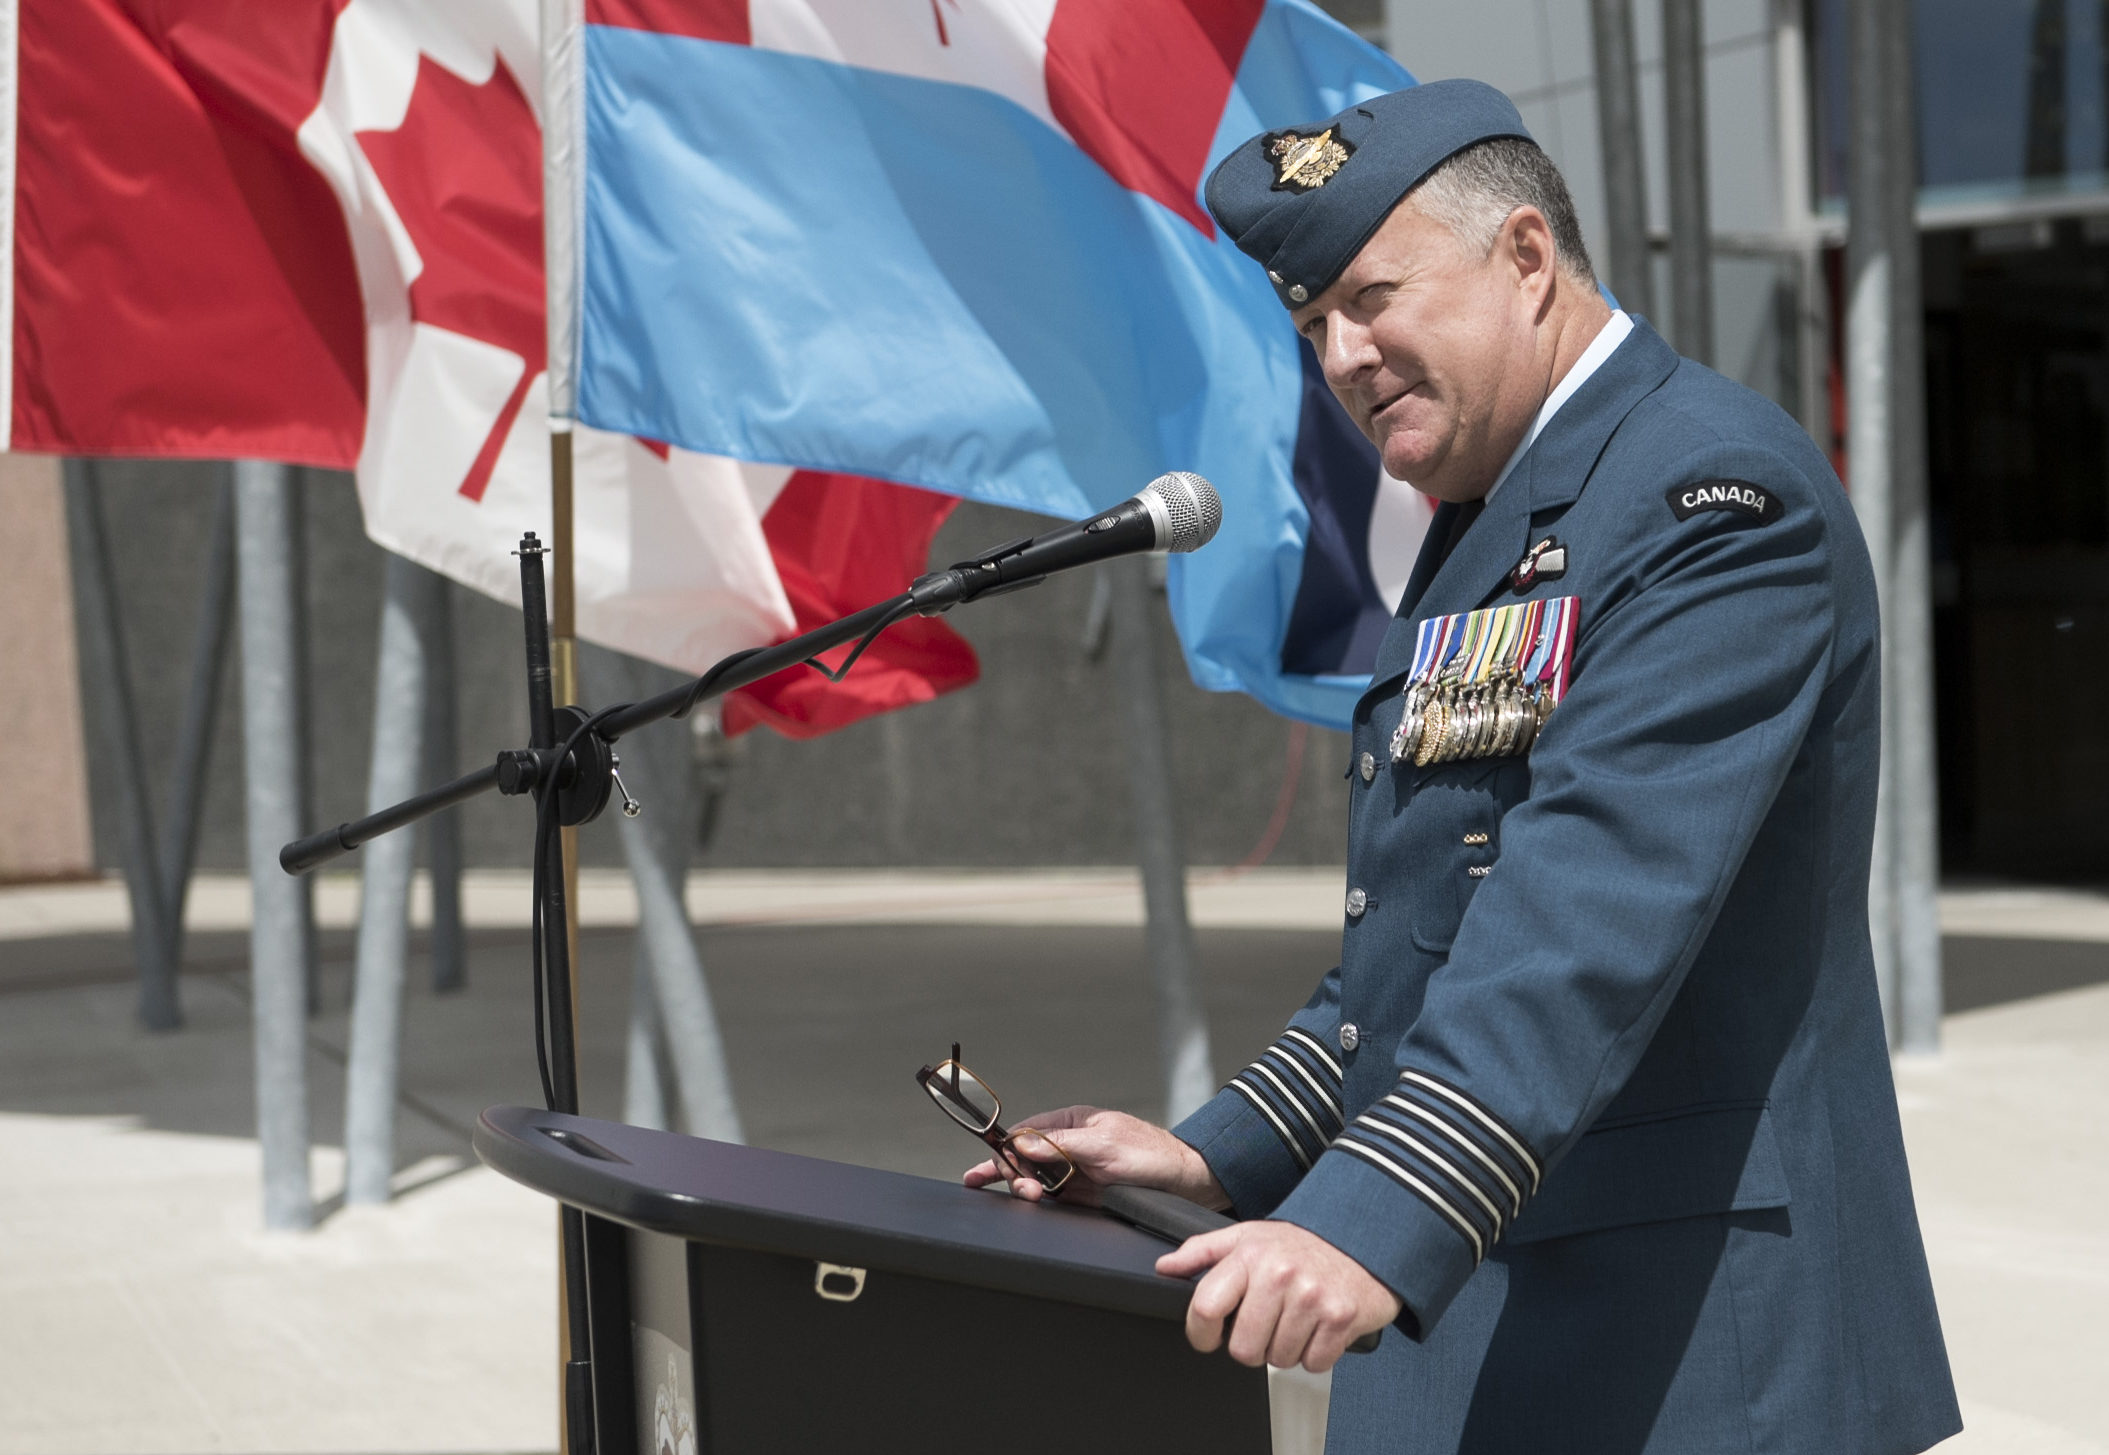 Col Shayne Elder, incoming commanding officer of the Canadian Aerospace Warfare Centre, speaks during the change of command ceremony held June 21, 2017, at Trenton, Ont.